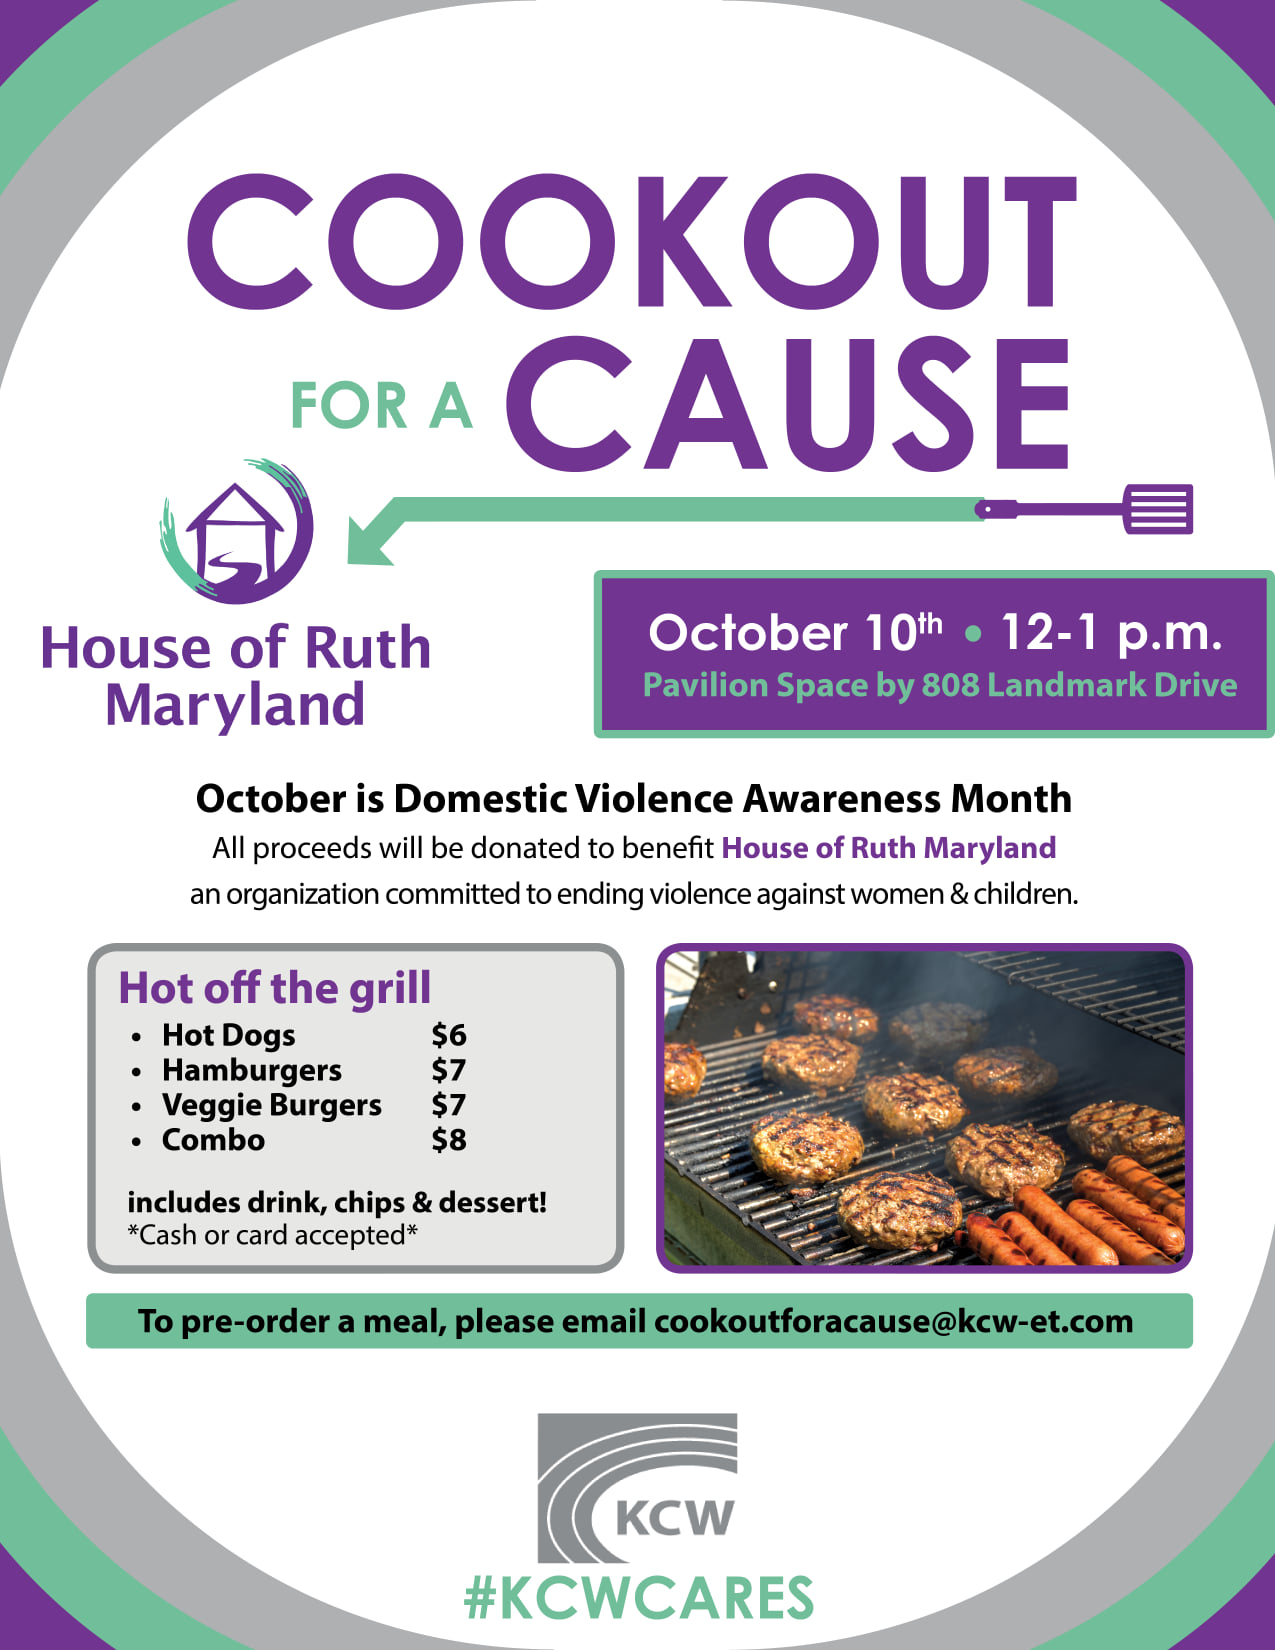 Cookout for a Cause October 10